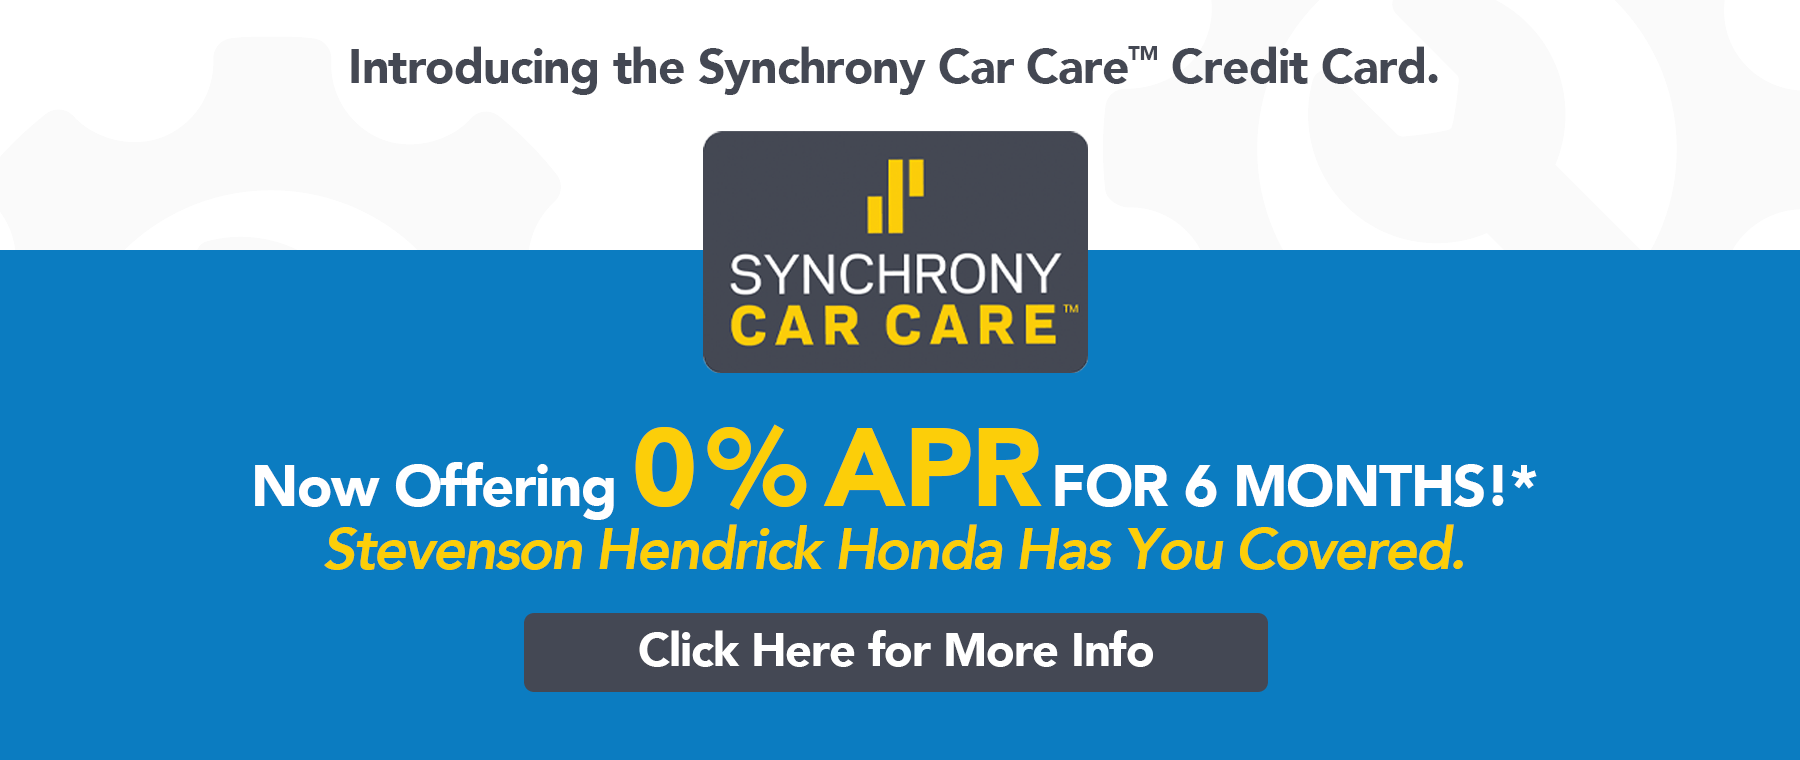 Synchrony Car Care Credit Card promotion